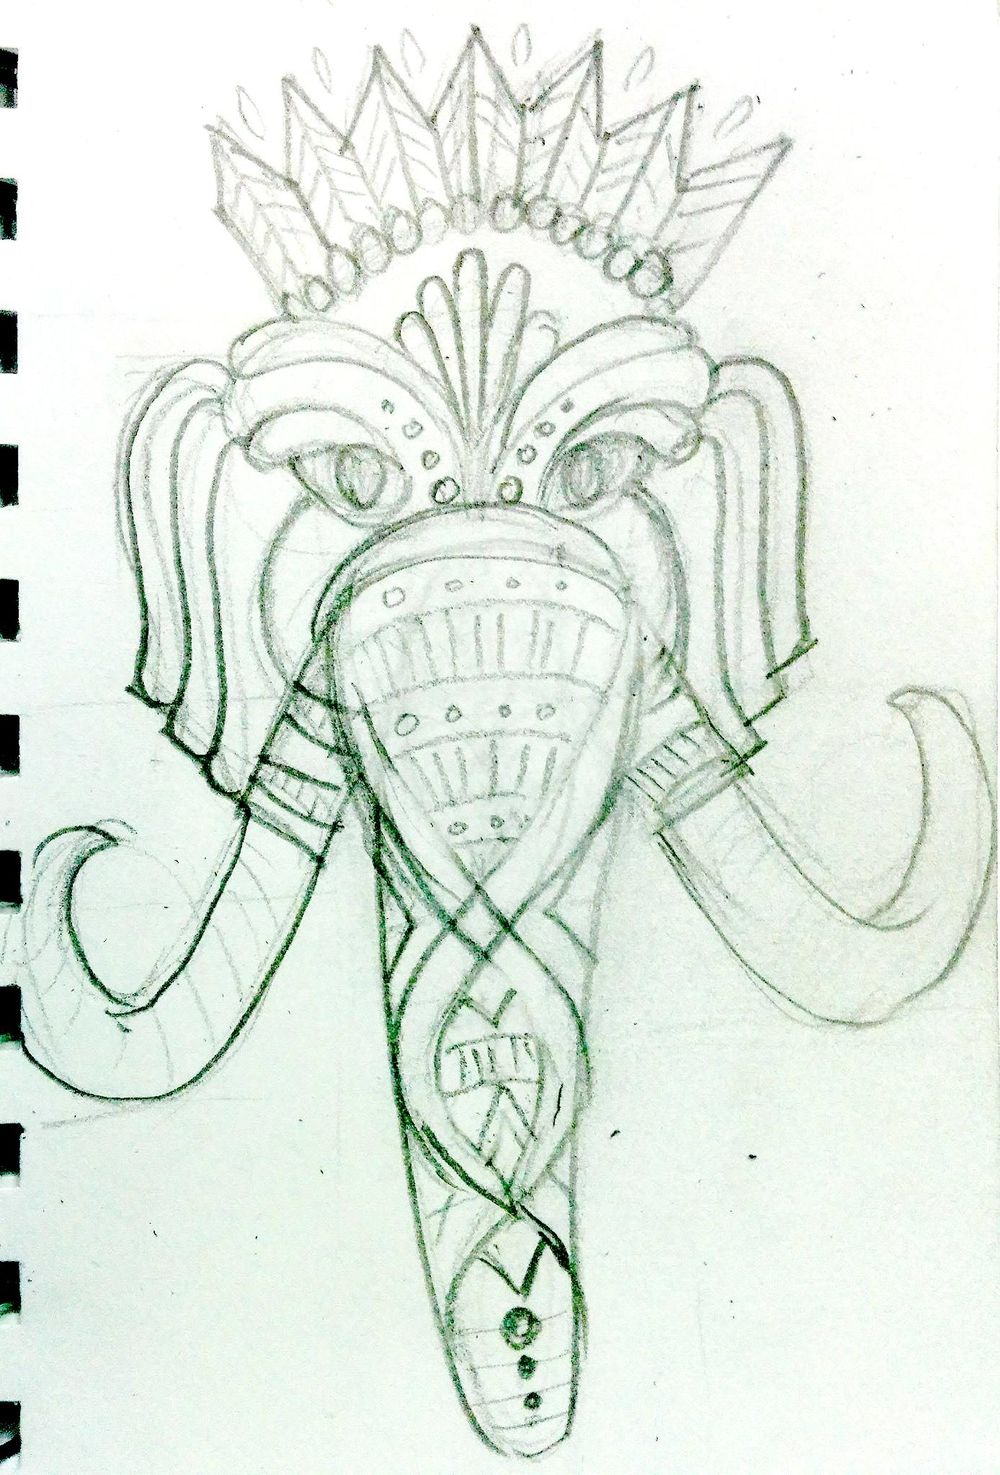 Mammoth - image 1 - student project